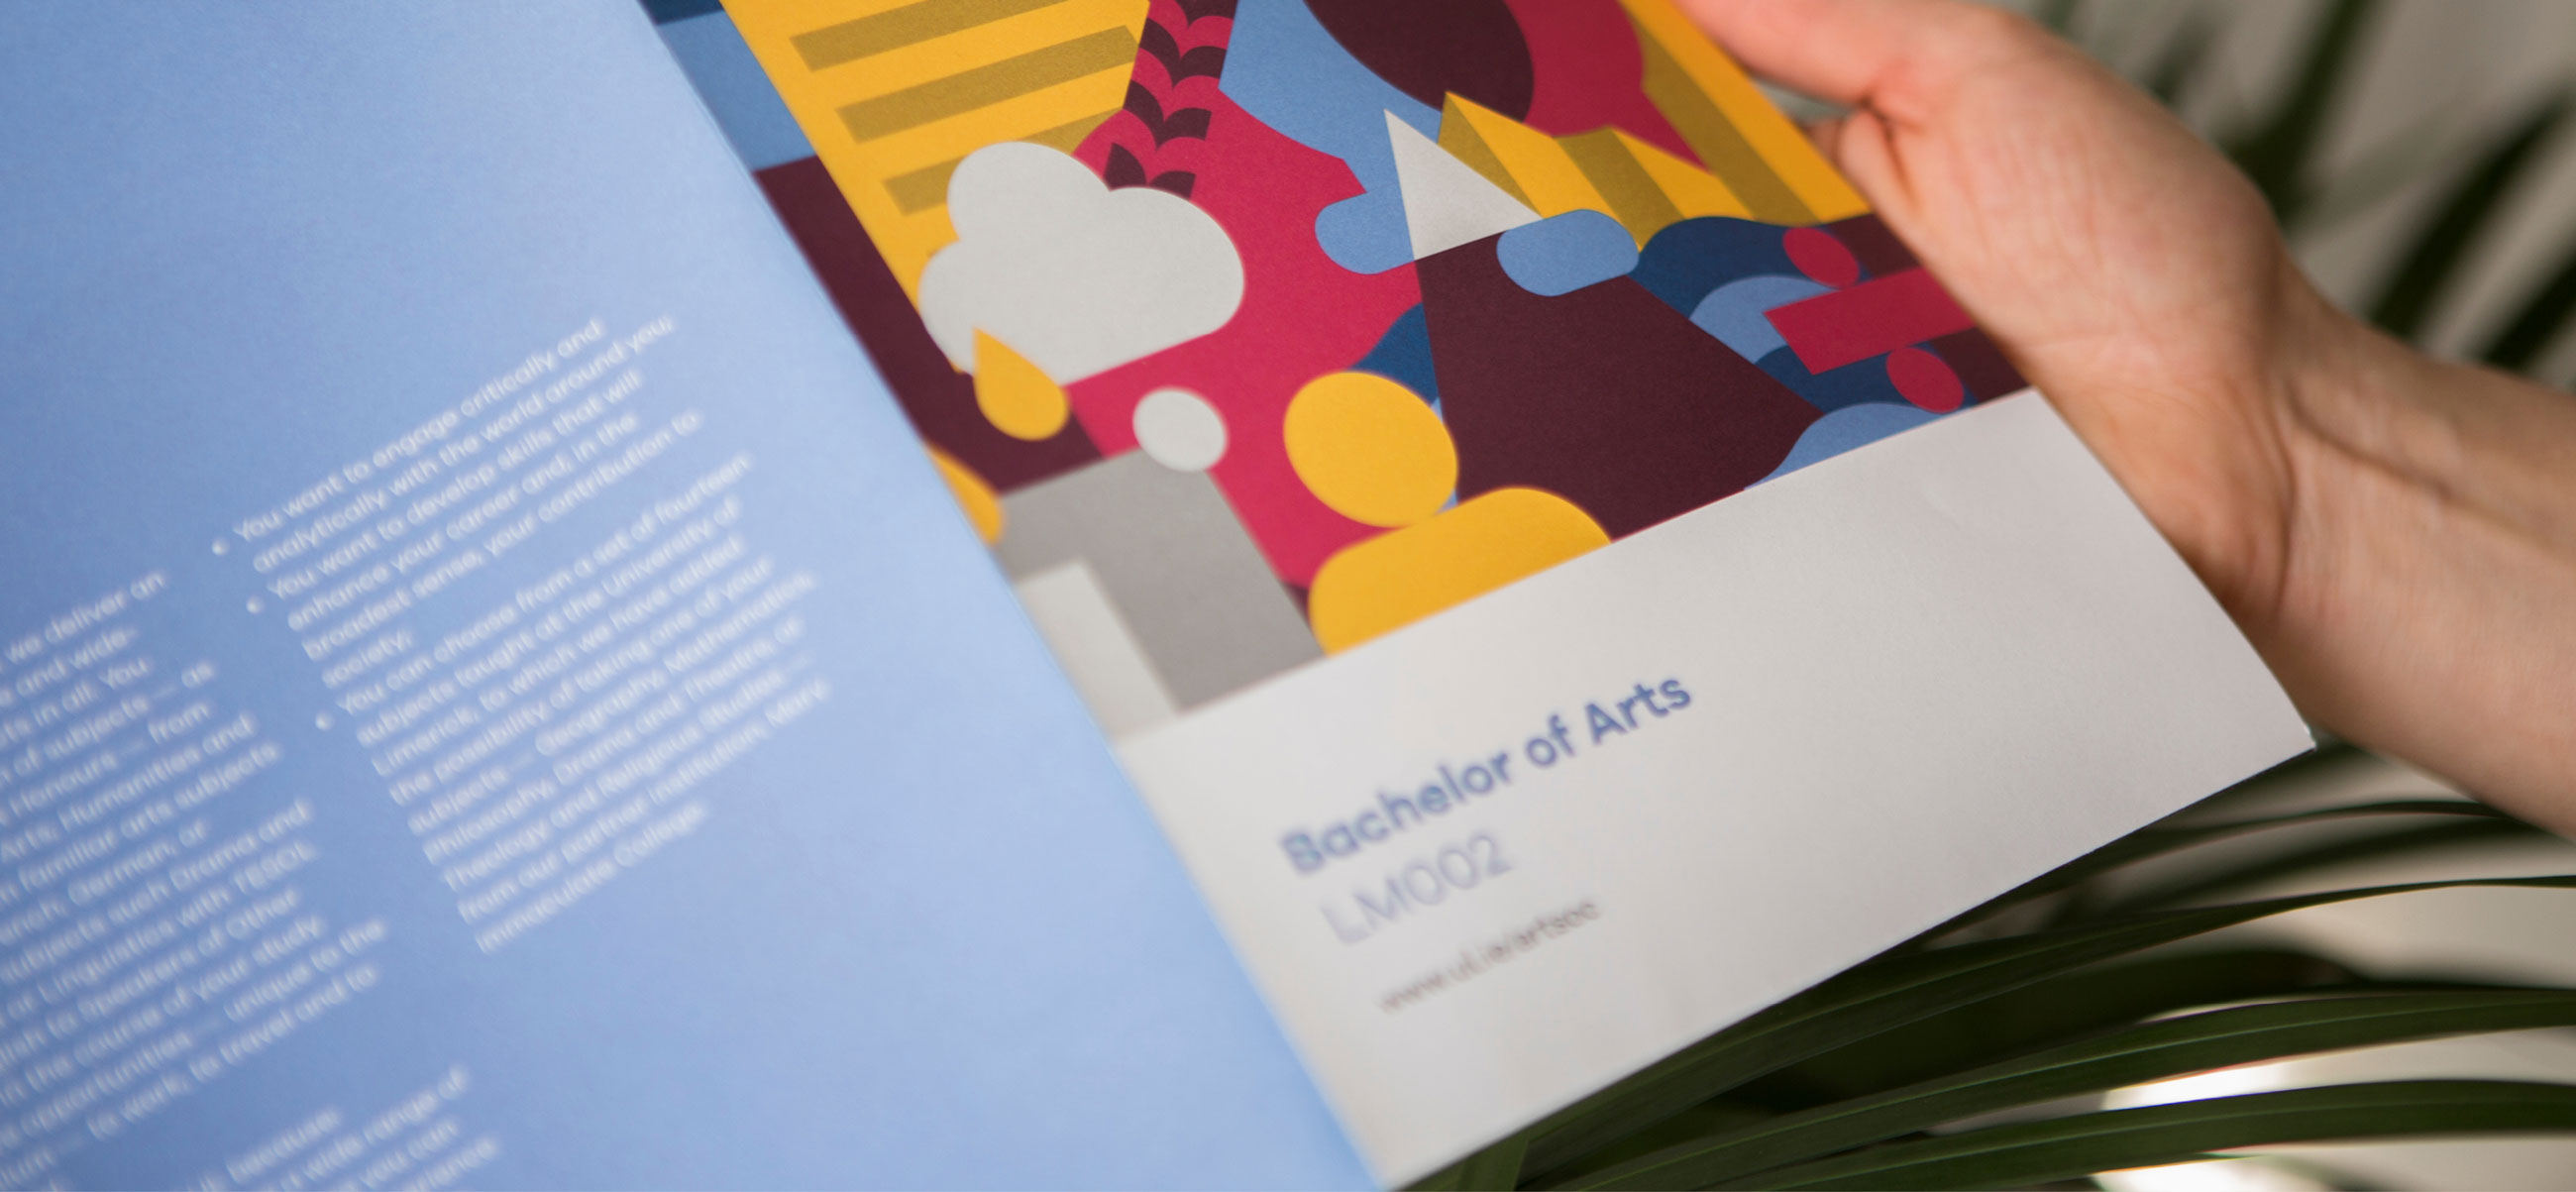 Person reading the UL Bachelor of Arts brochure